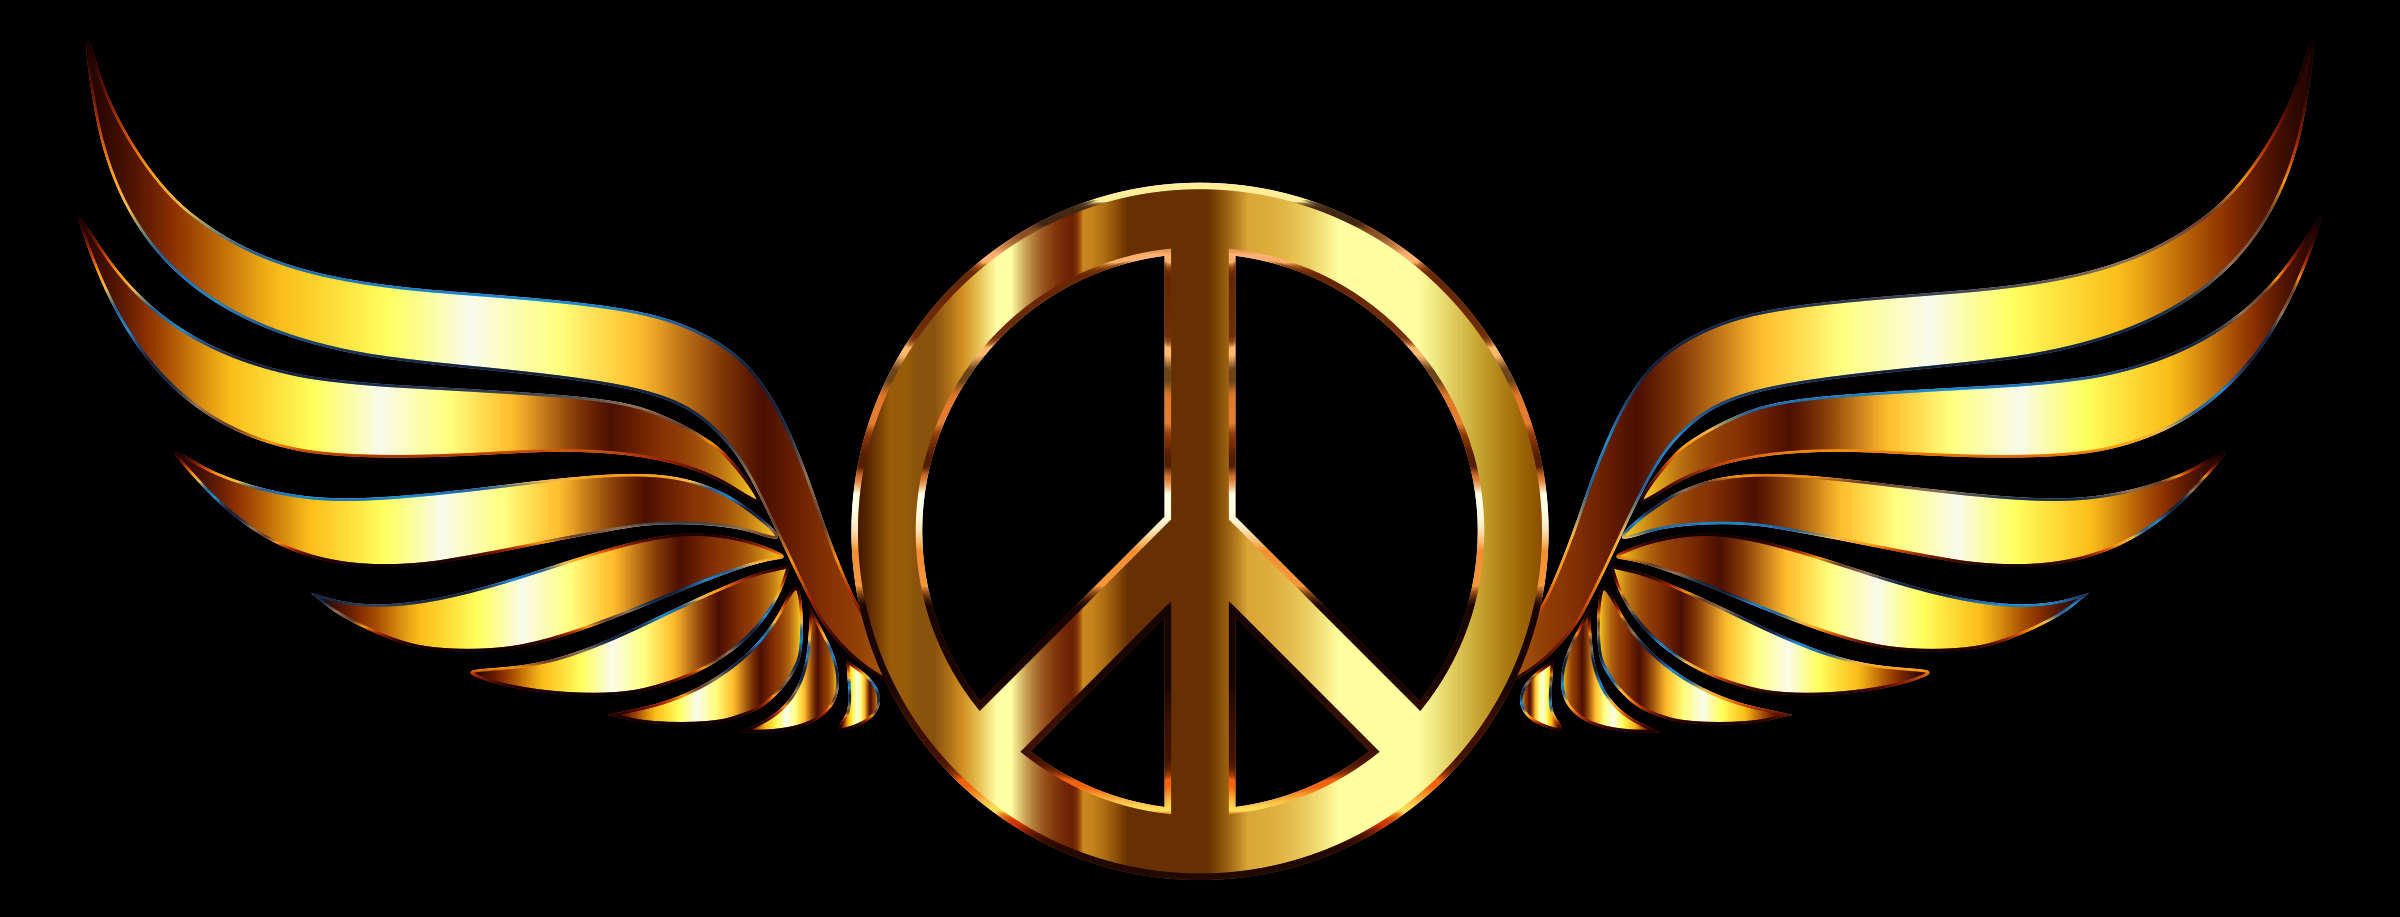 Gold Peace Sign Wings Enhanced Contrast by GDJ